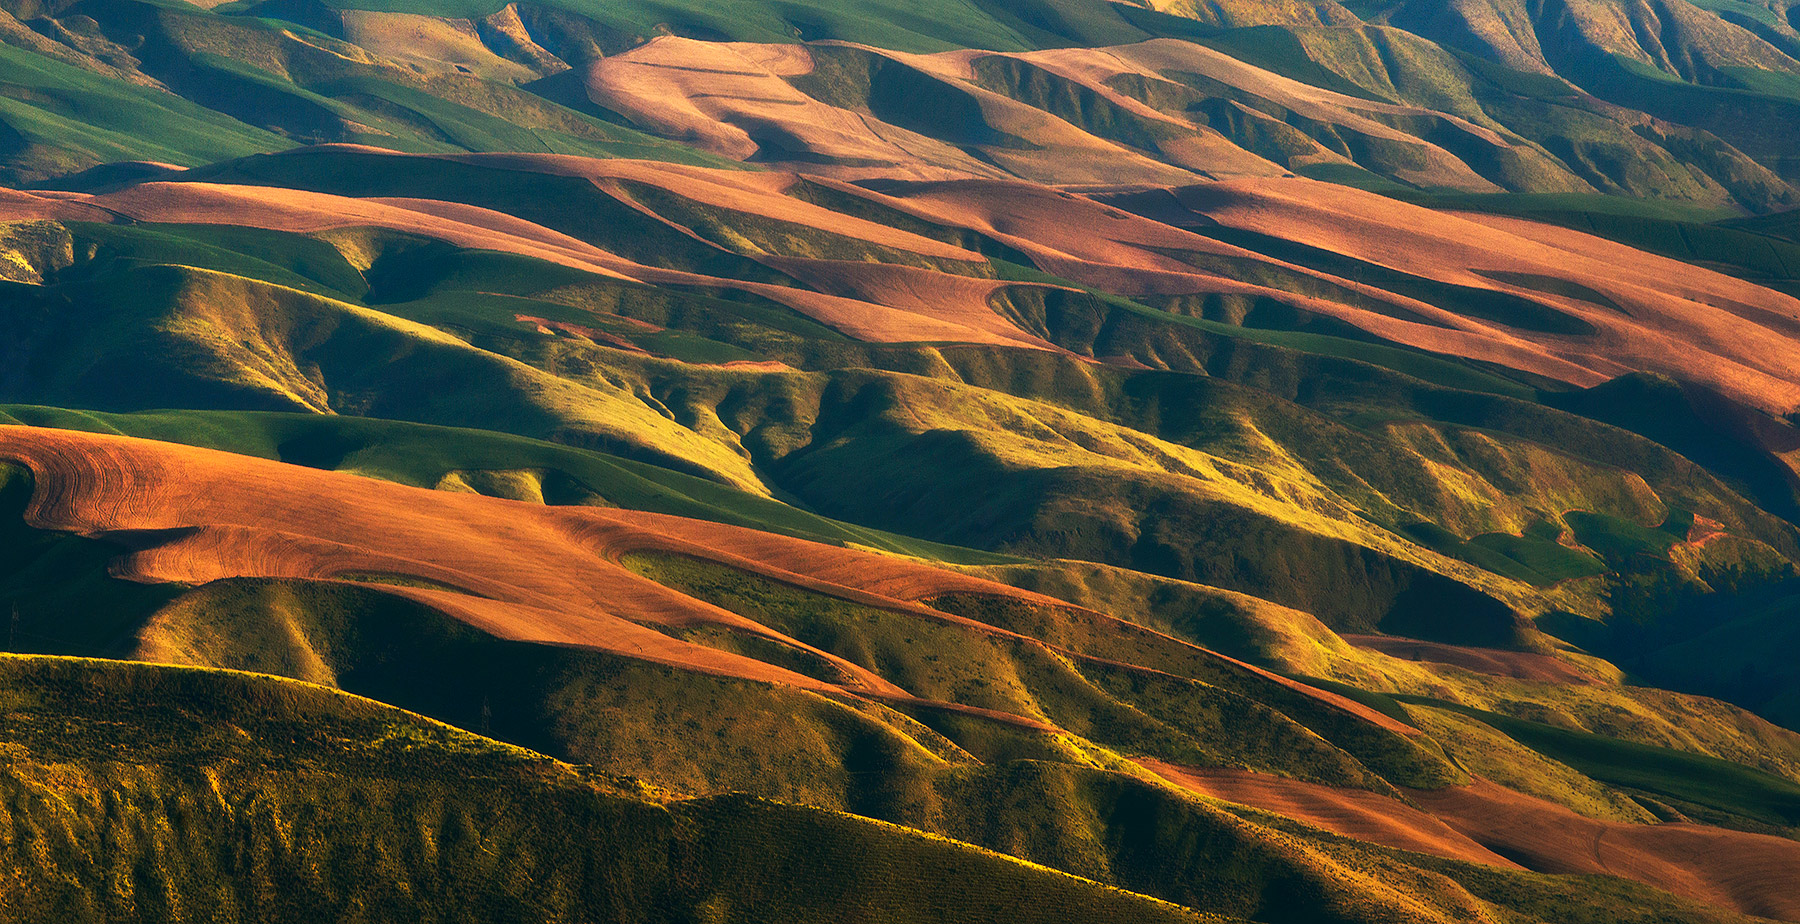 Layers of farmland photographed with a 400mm telephoto in Washington's Columbia River Gorge.